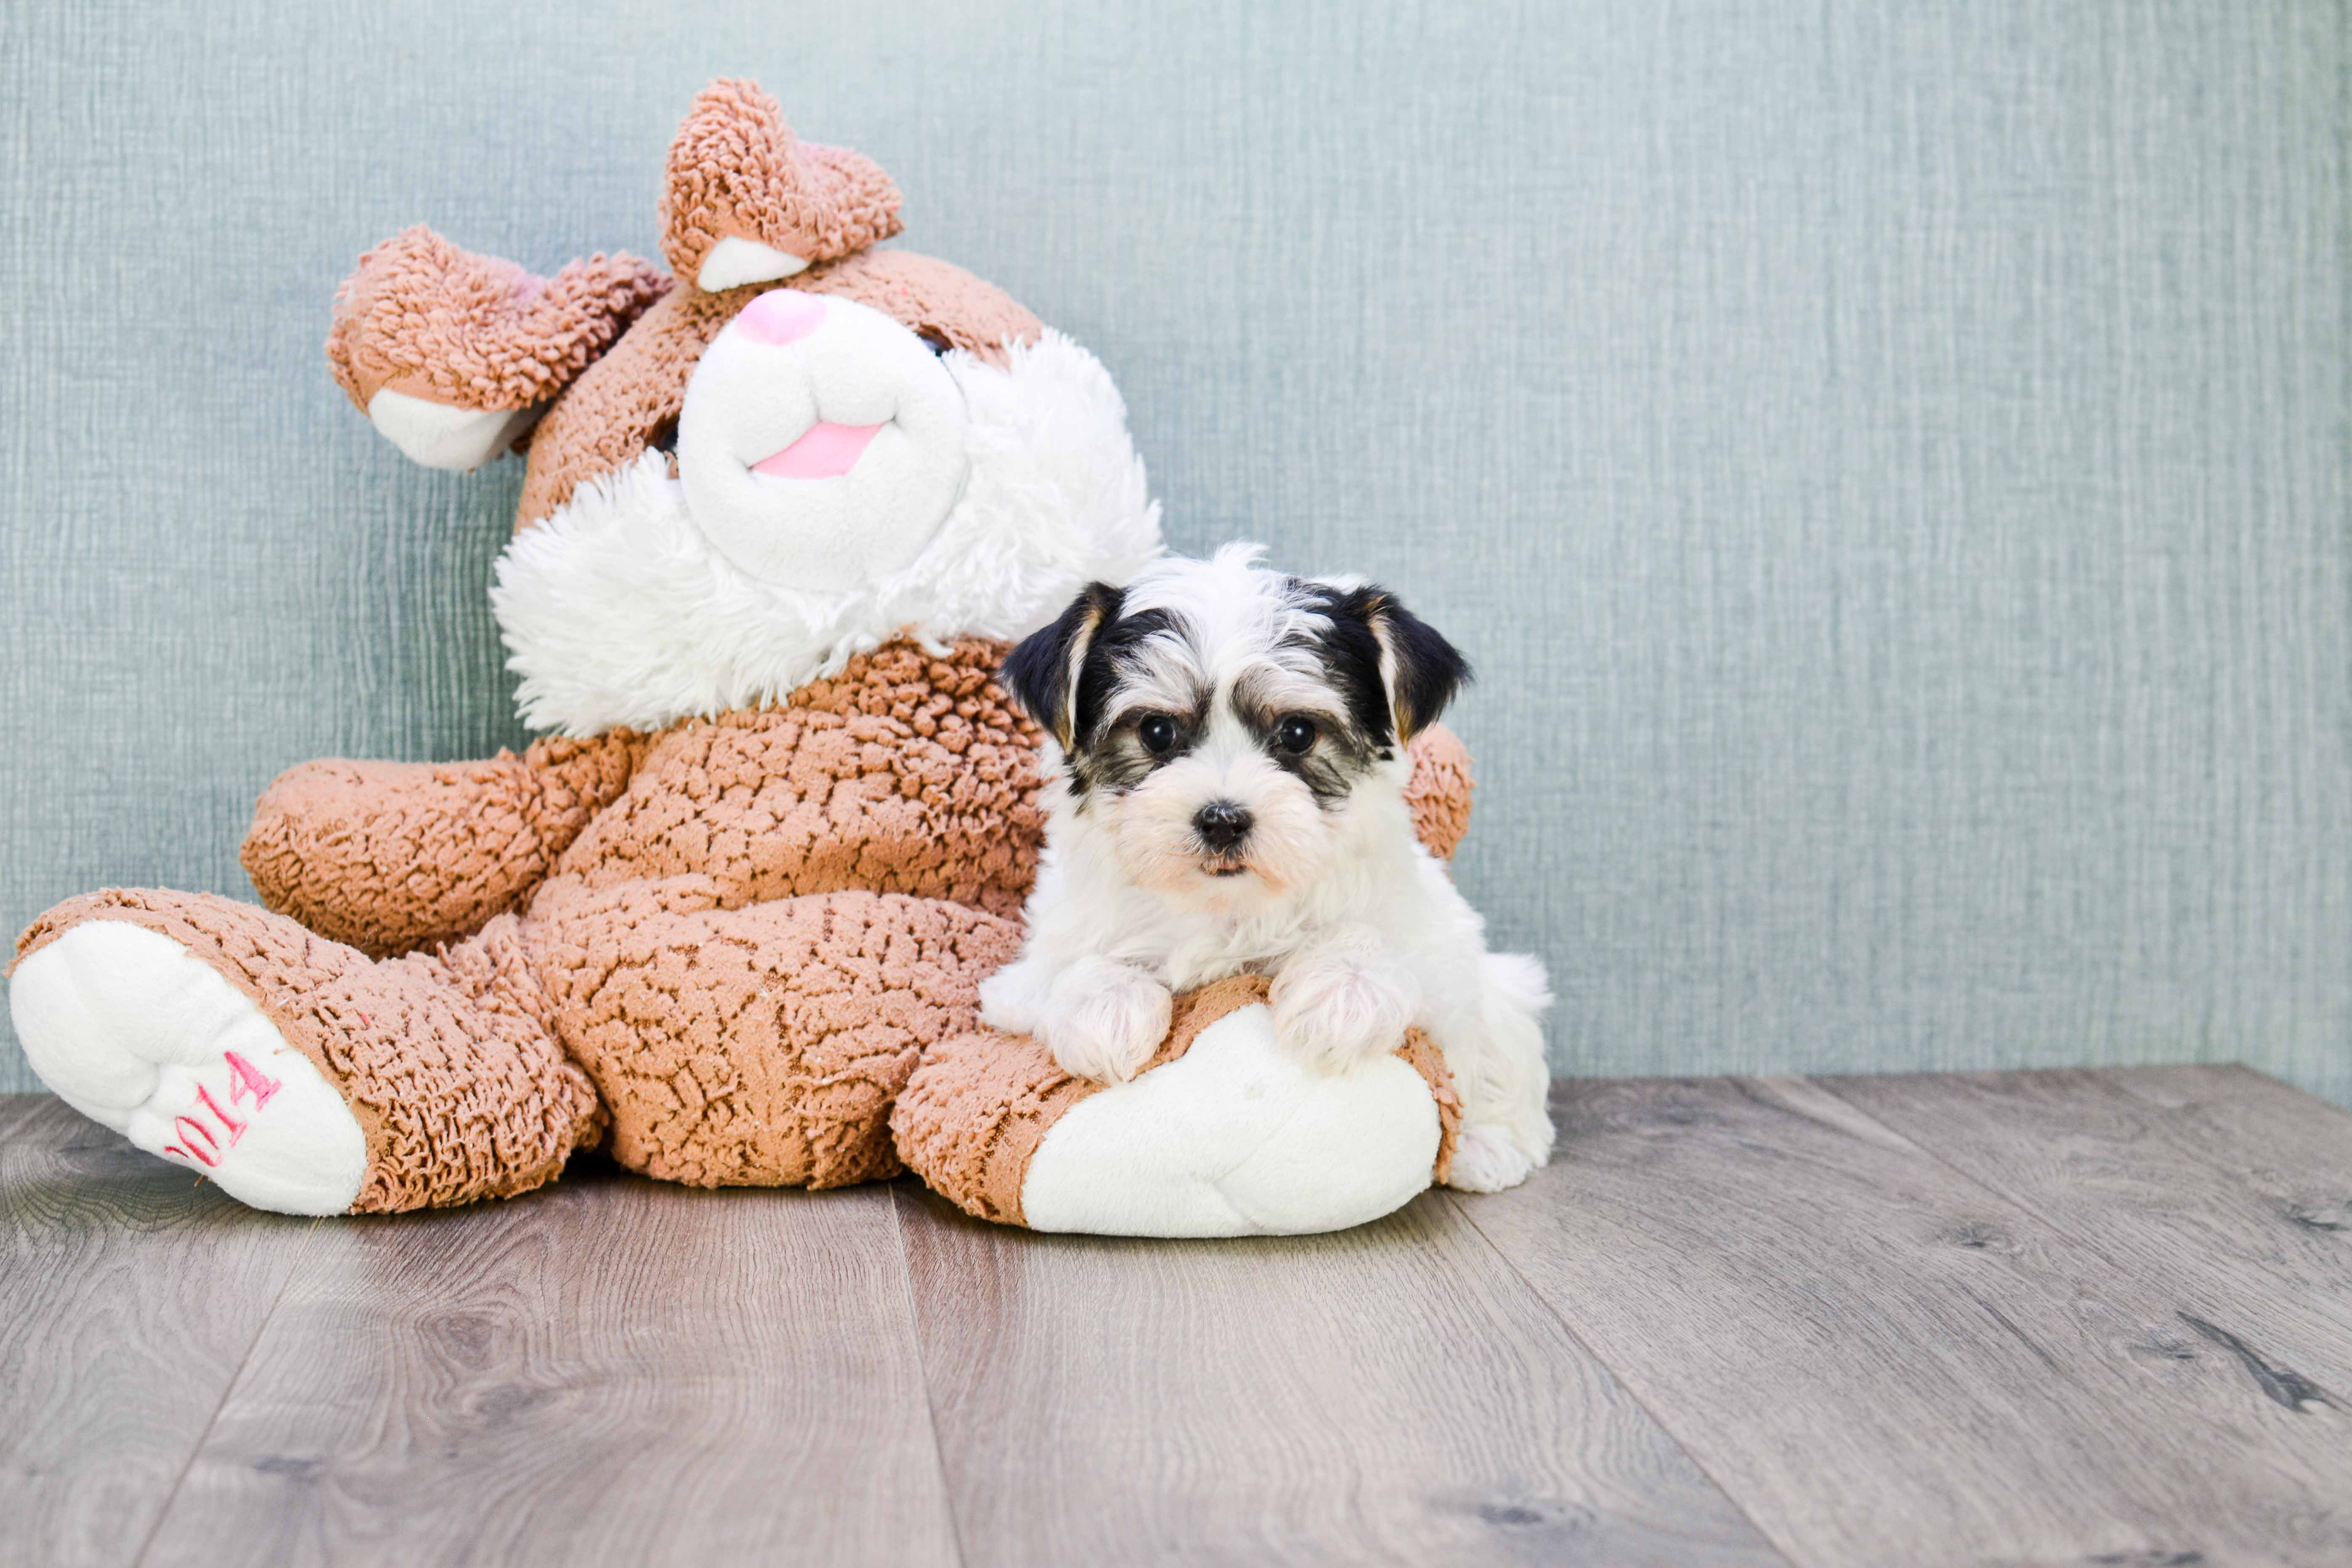 Admirable Morkie Puppies For Sale Mixed Small Breed Puppies For Sale Short Hairstyles For Black Women Fulllsitofus